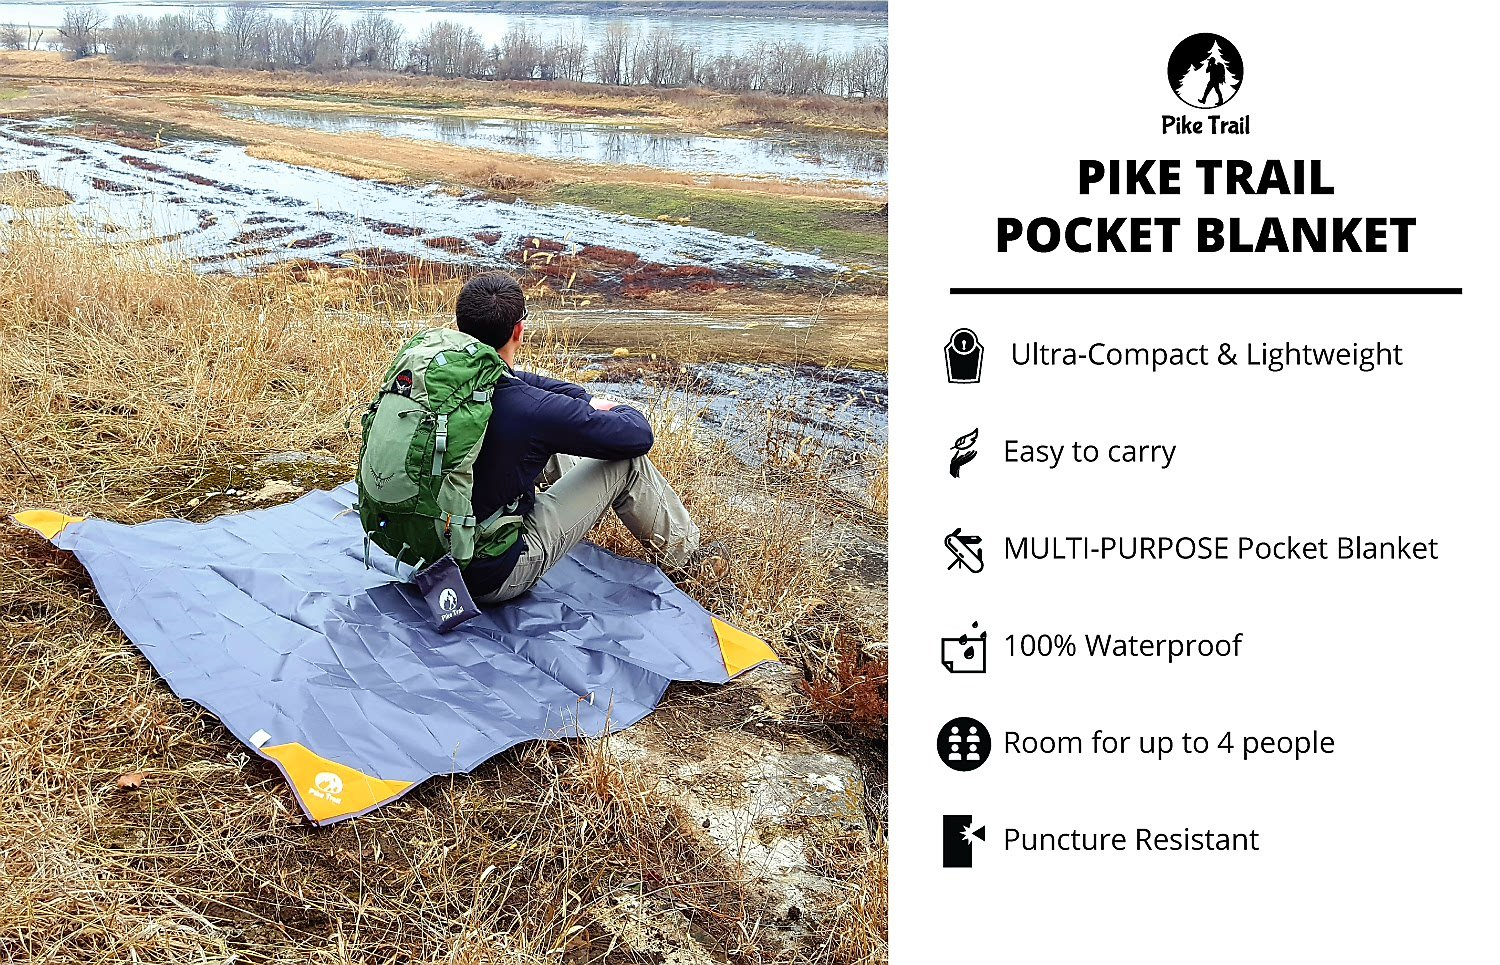 Pike Trail Pocket Blanket – Waterproof, Lightweight and Durable Tarpaulin for Outdoors – 152 x 142cm 6